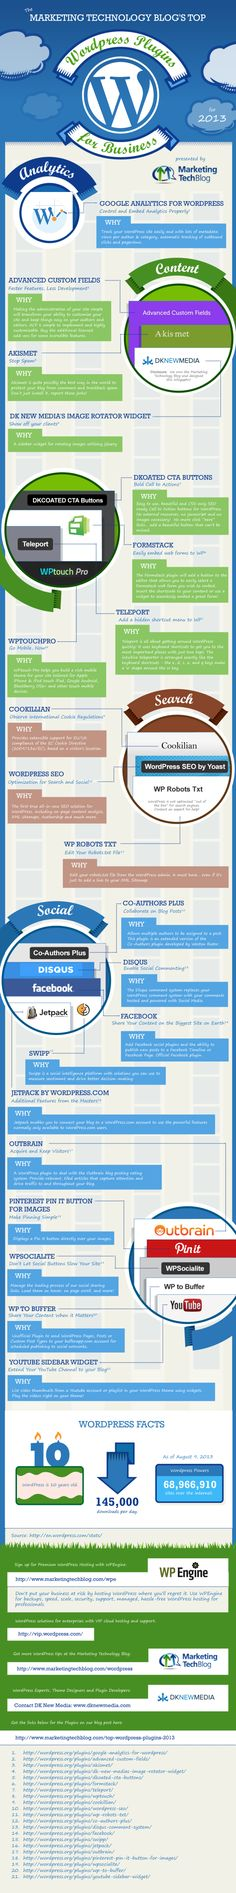 21 Best WordPress Plugins For Businesses in 2013 [Infographic] http://www.intelisystems.com